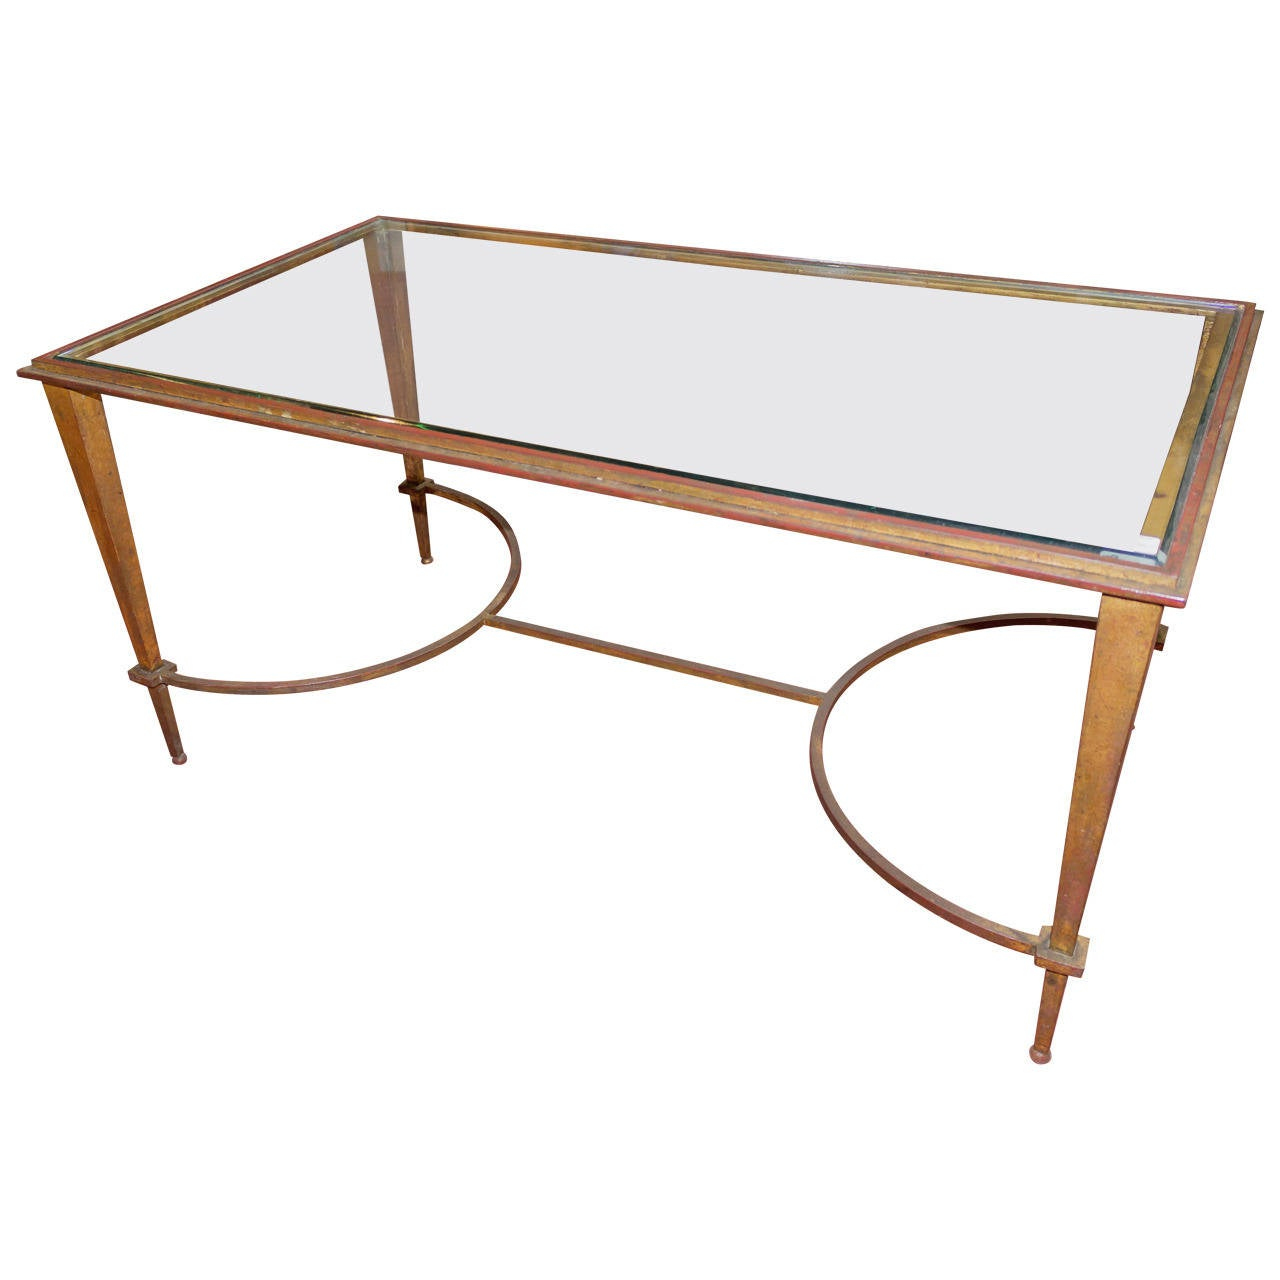 French 1940s Coffee Table By Maison Ramsay At 1stdibs